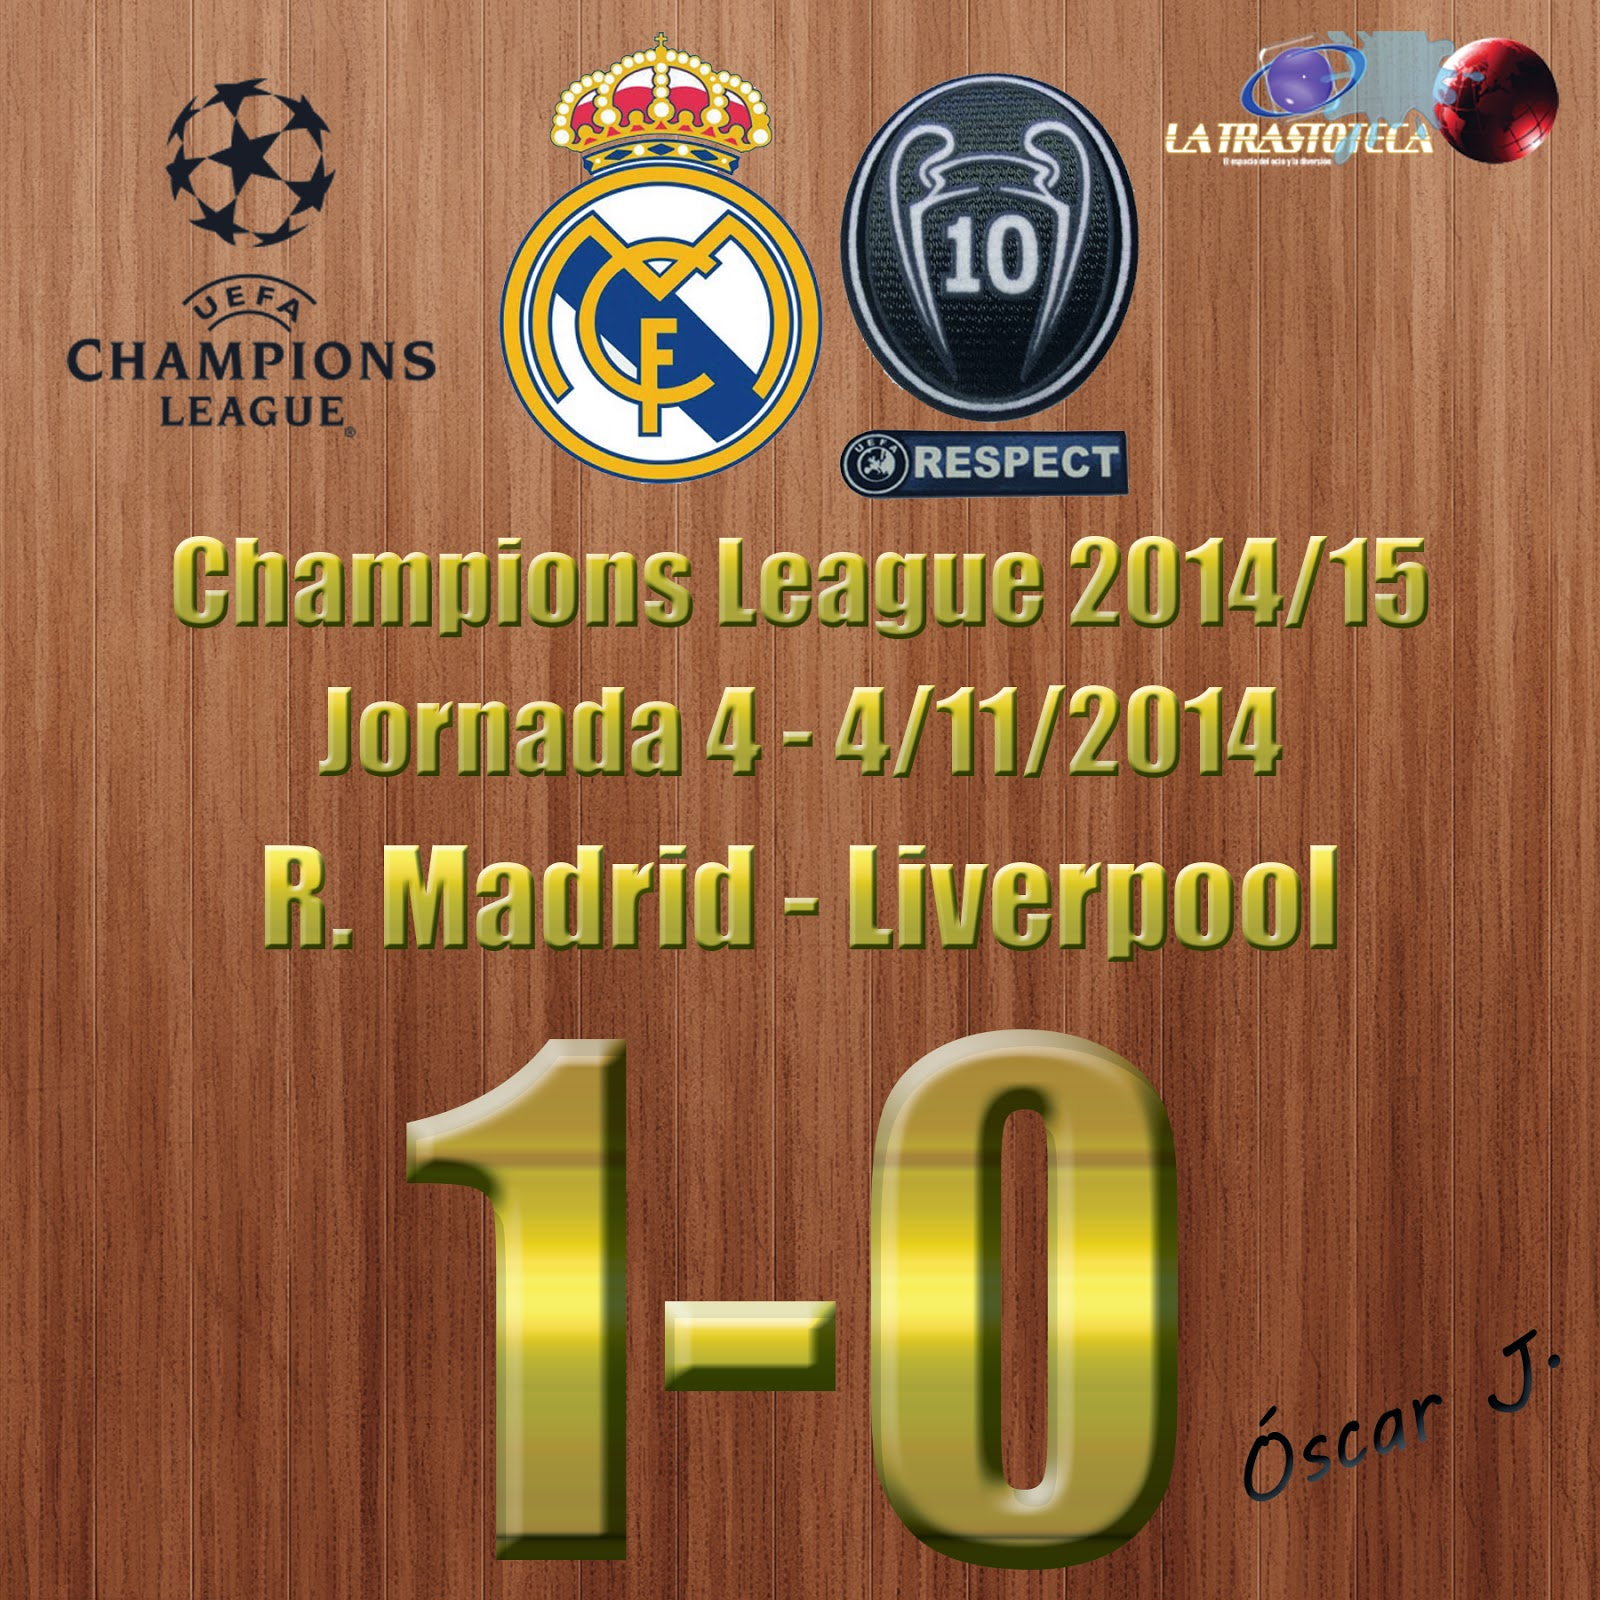 Real Madrid 1-0 Liverpool